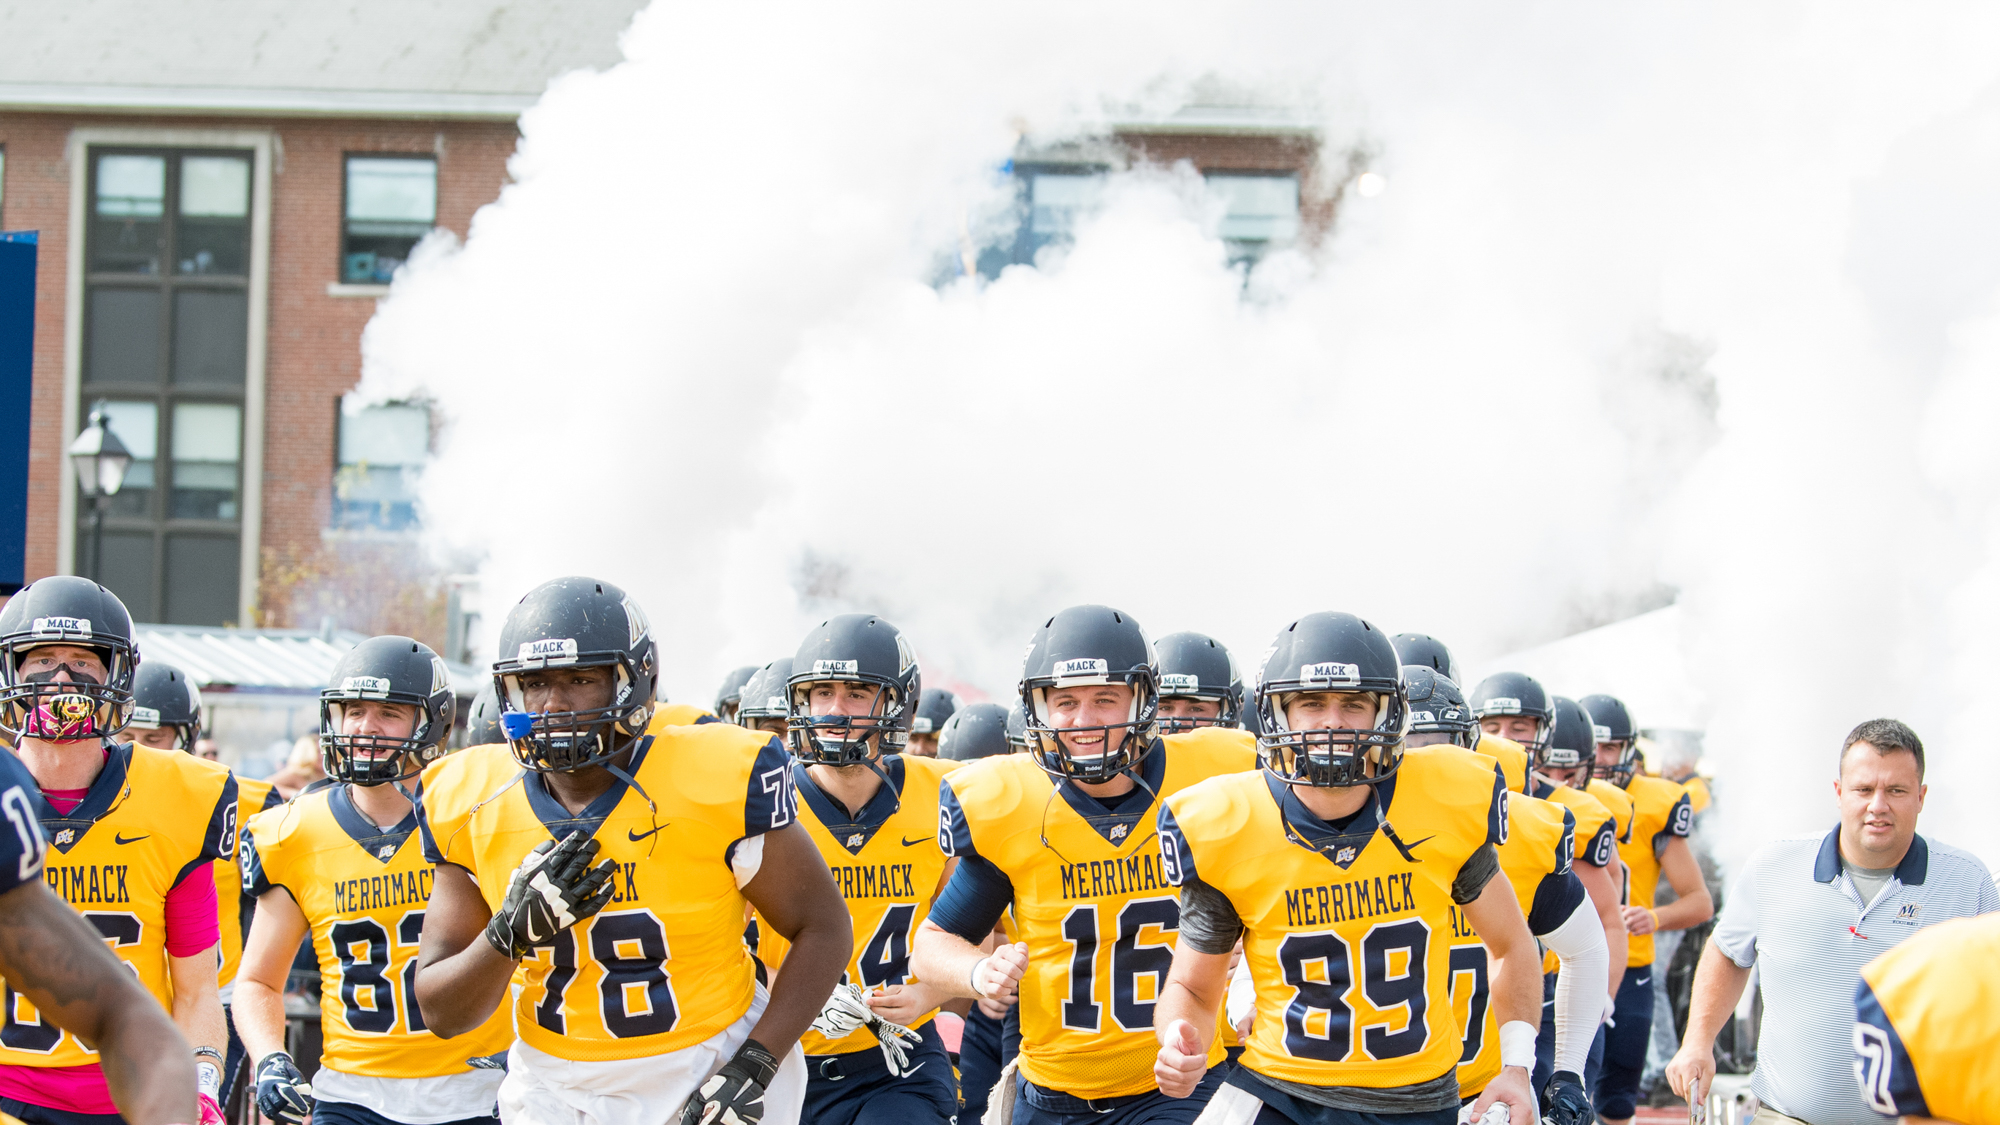 Football Commences 2018 With Saturday Trek To Bloomsburg Merrimack